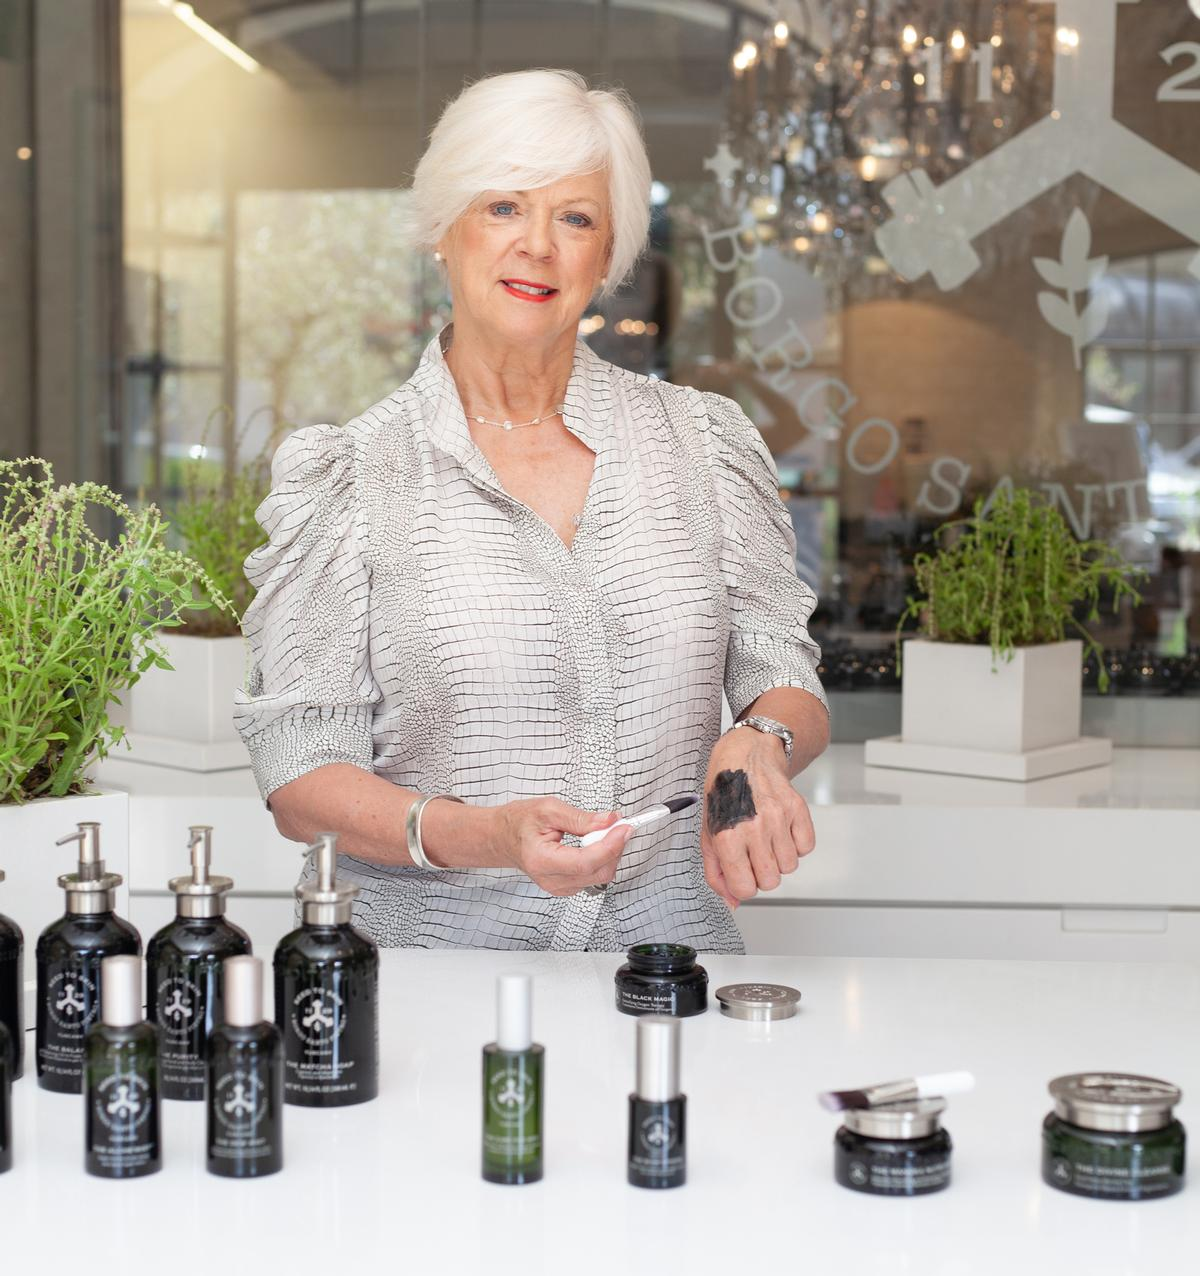 Terry Prager has worked in the spa and beauty industry for over 30 years and previously worked for brands including Espa, La Prairie, Ritz-Carlton and, most recently, Natura Bissé / Seed to Skin